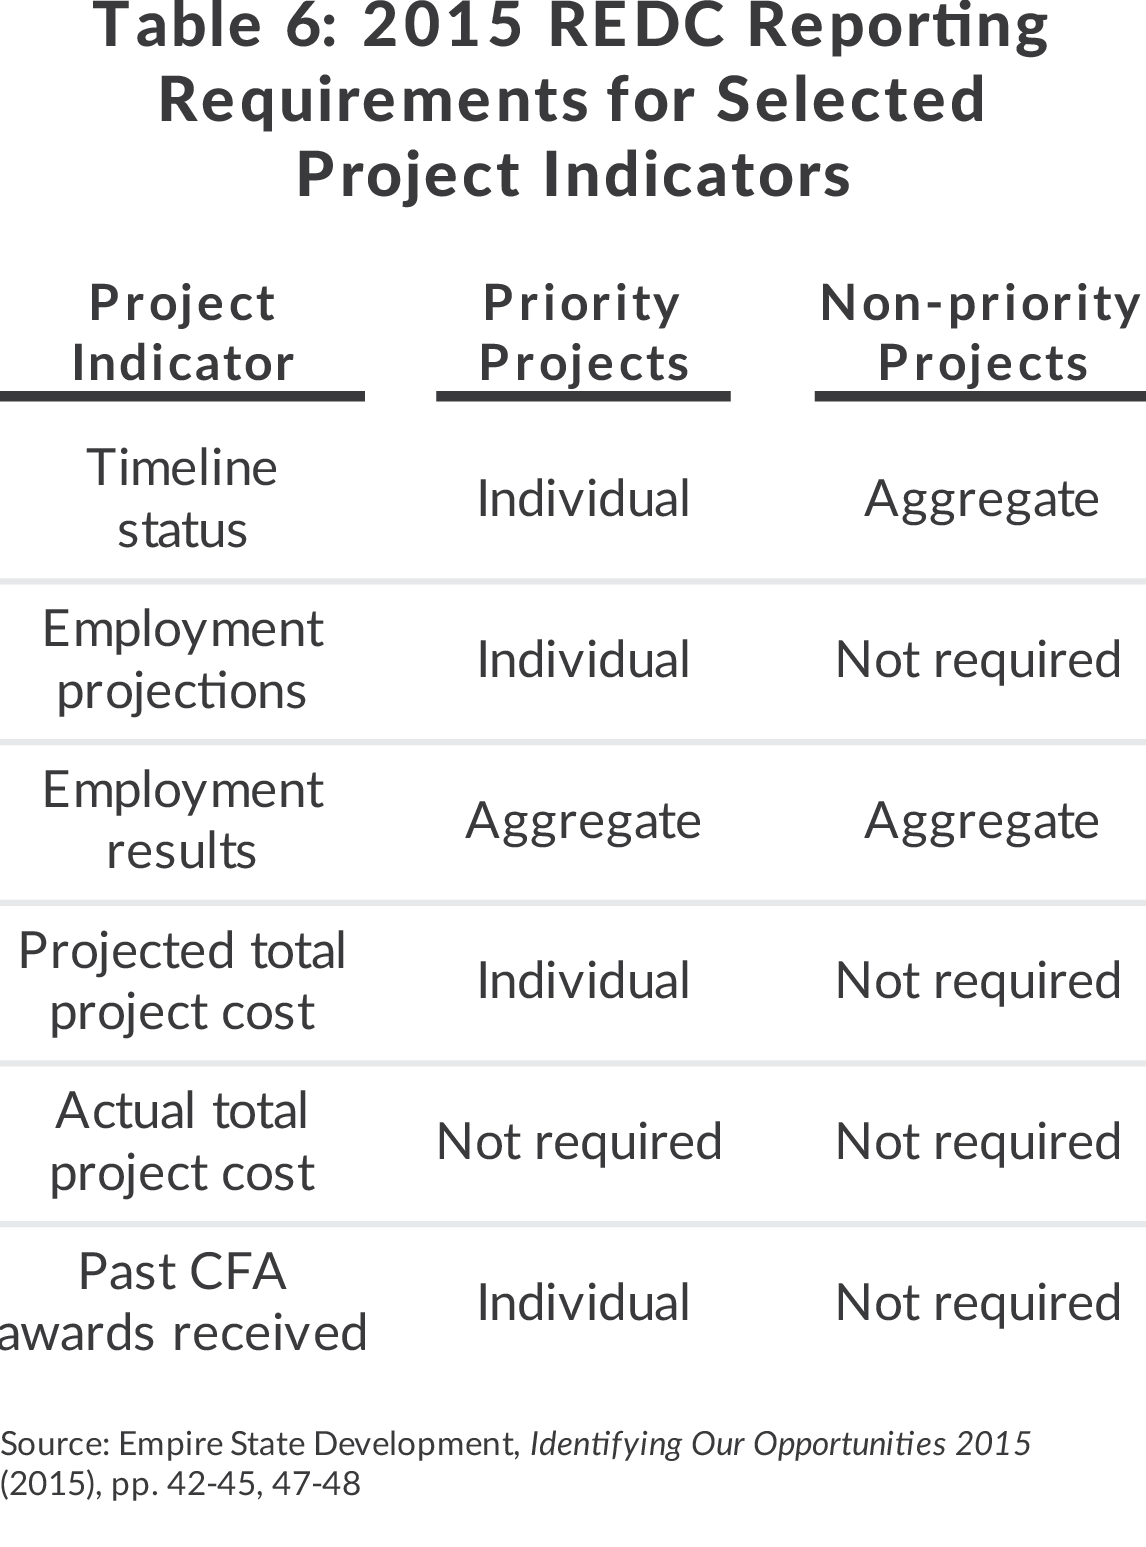 Table of Regional Economic Development Council reporting requirements for project indicators, priority projects and non-priority projects